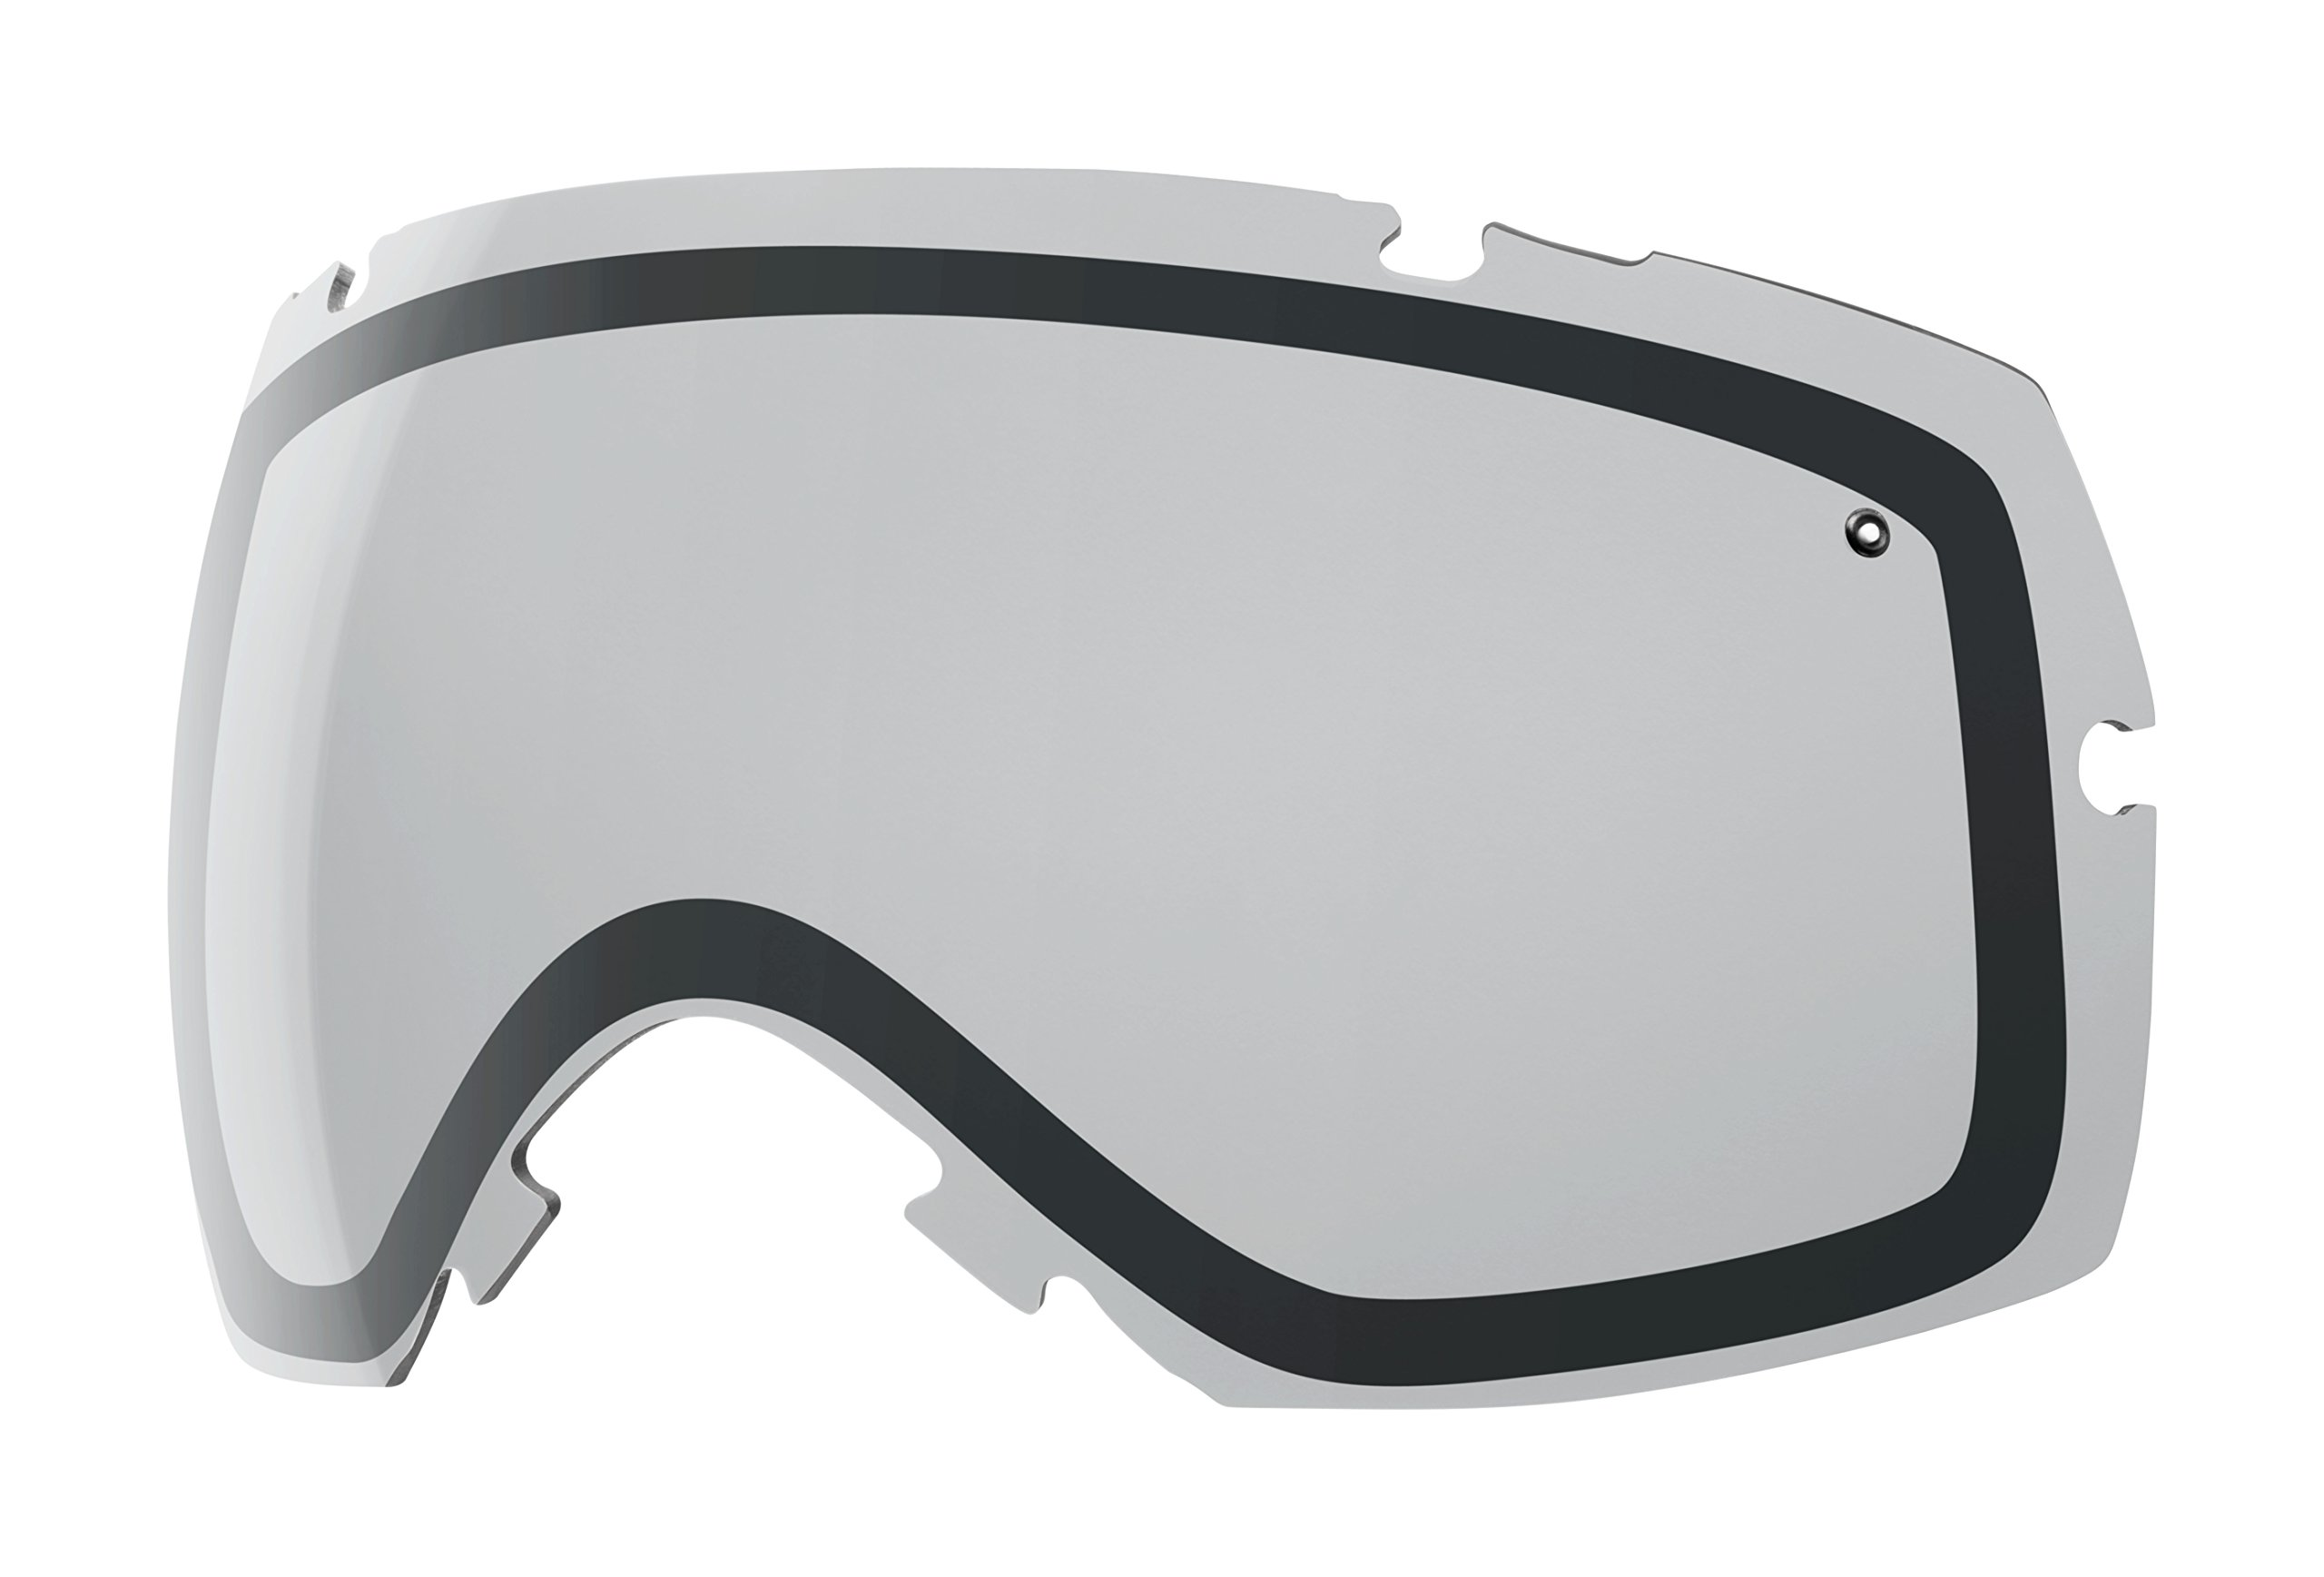 Smith Optics IOX/IOX Turbo Adult Replacement Lense Snow Goggles Accessories - Clear/One Size